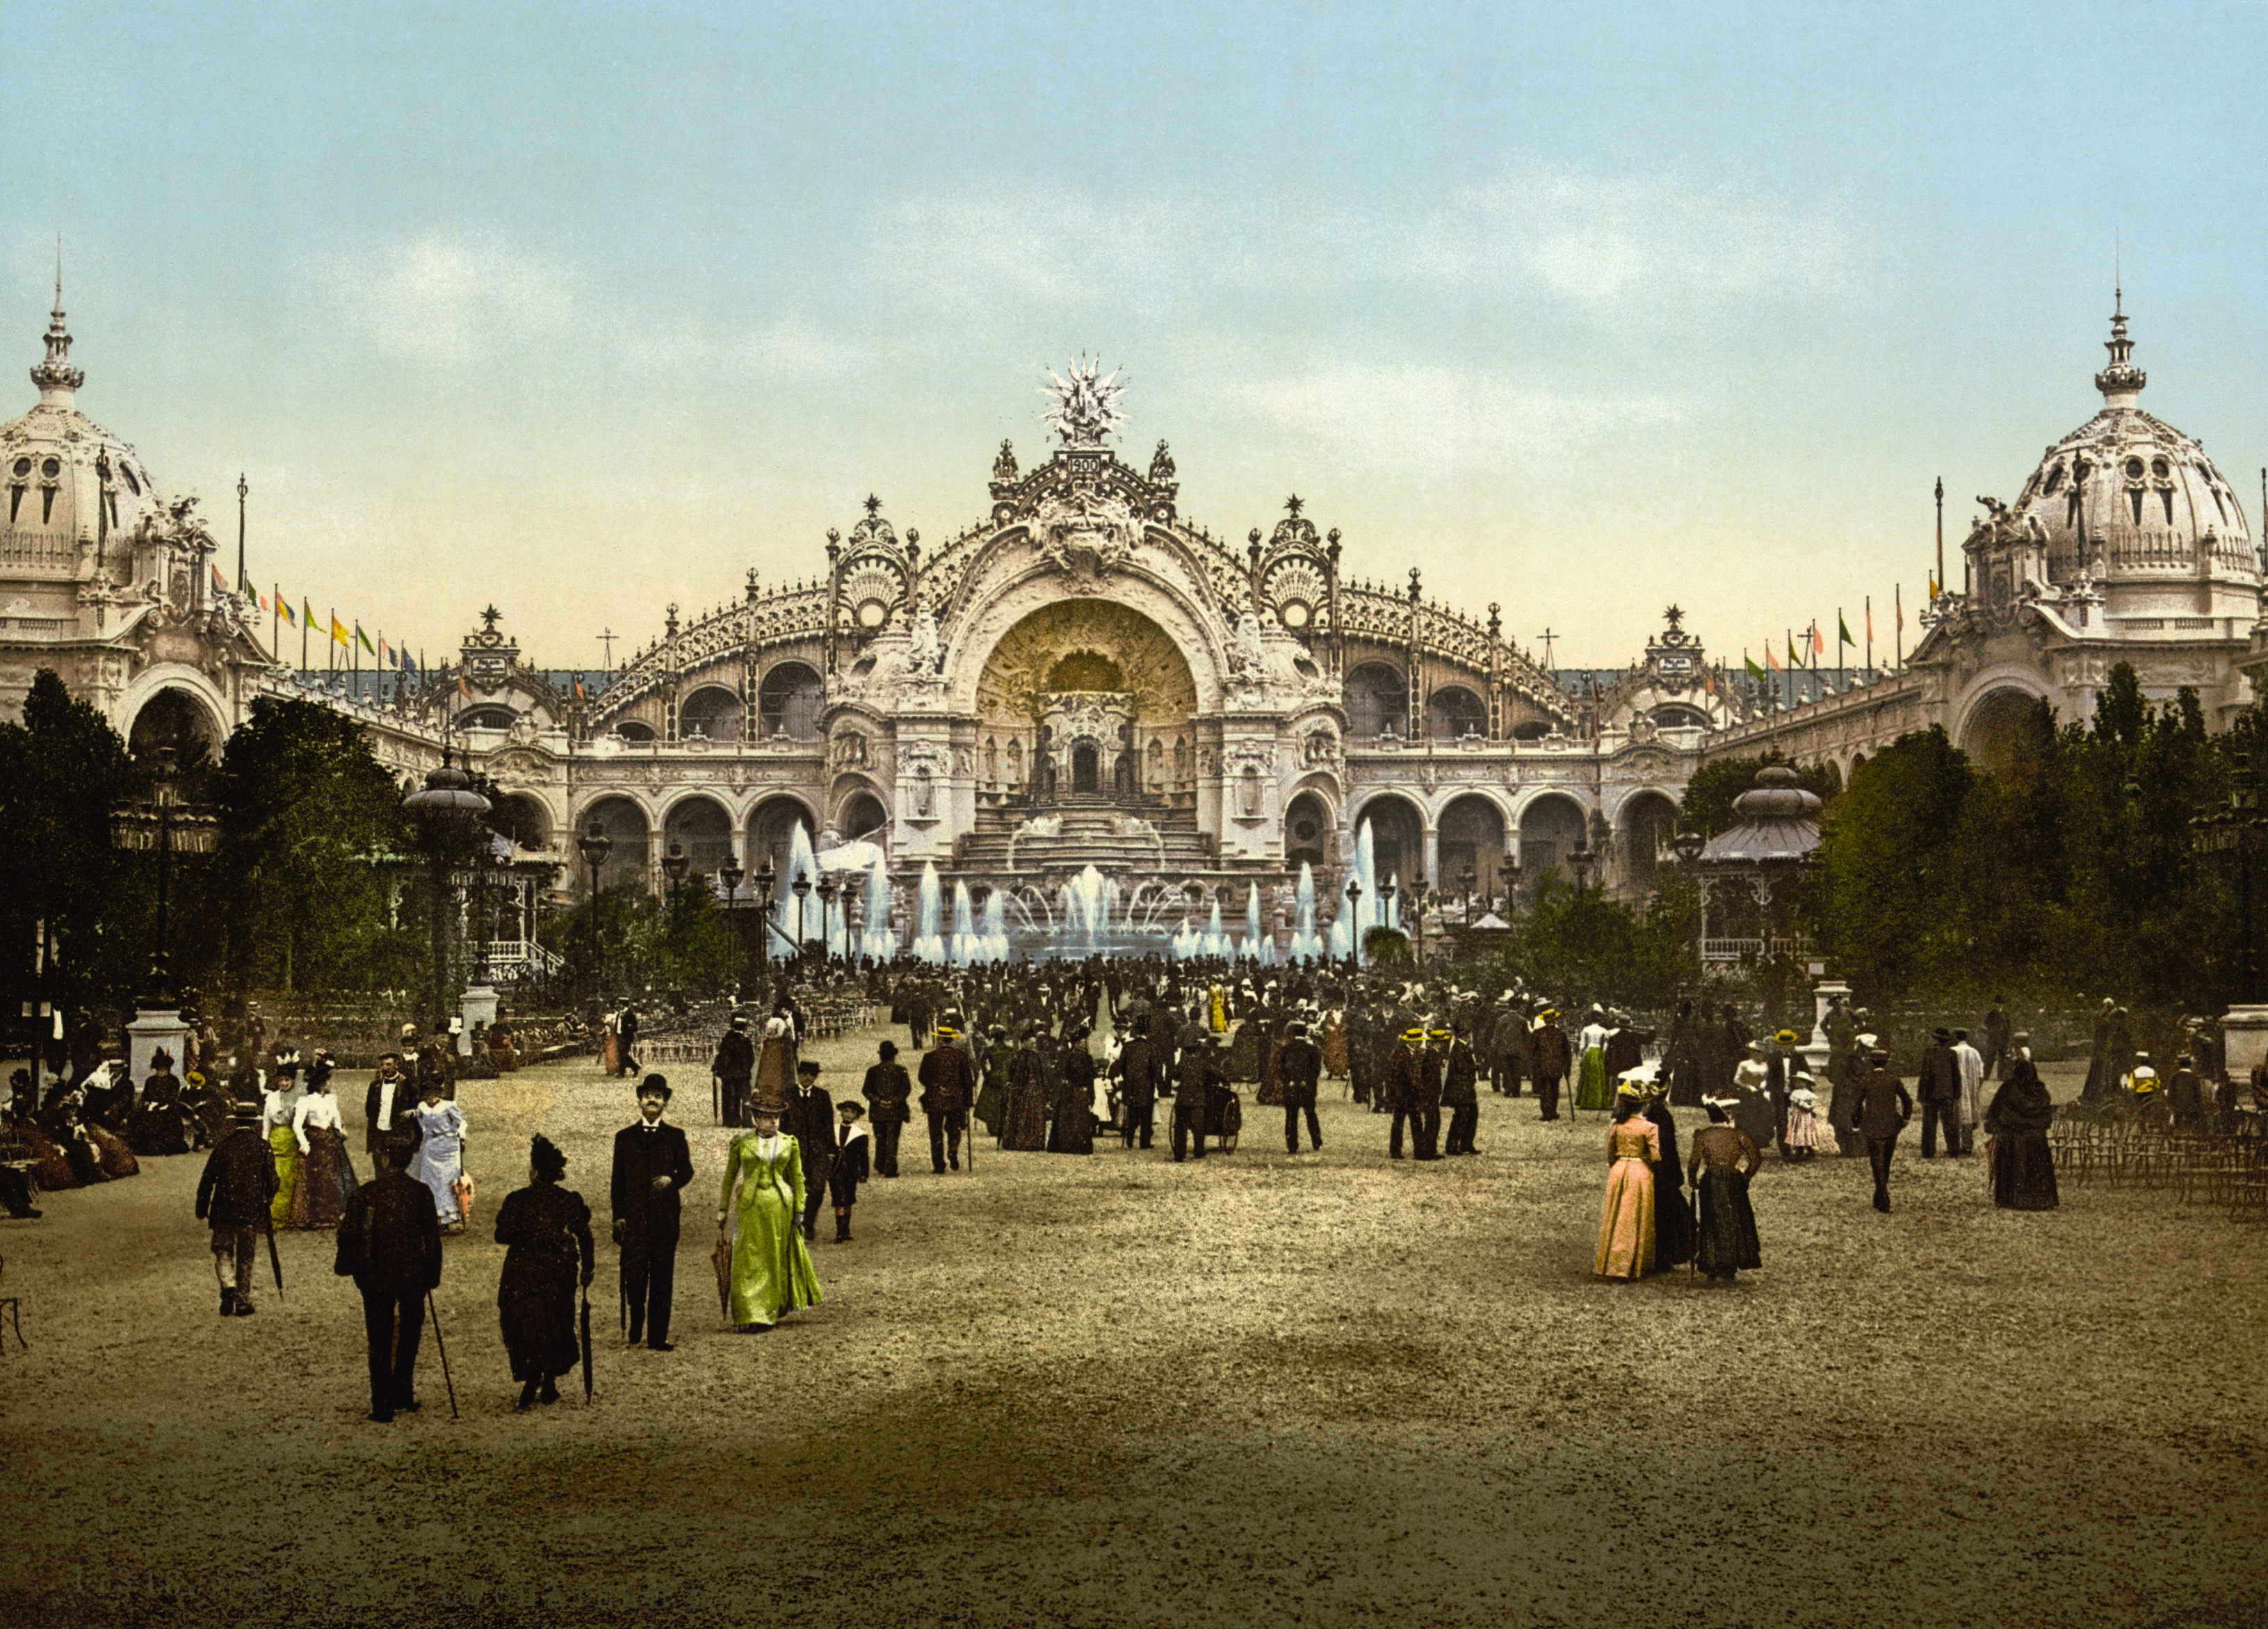 https://upload.wikimedia.org/wikipedia/commons/9/91/Le_Chateau_d%27eau_and_plaza,_Exposition_Universal,_1900,_Paris,_France.jpg